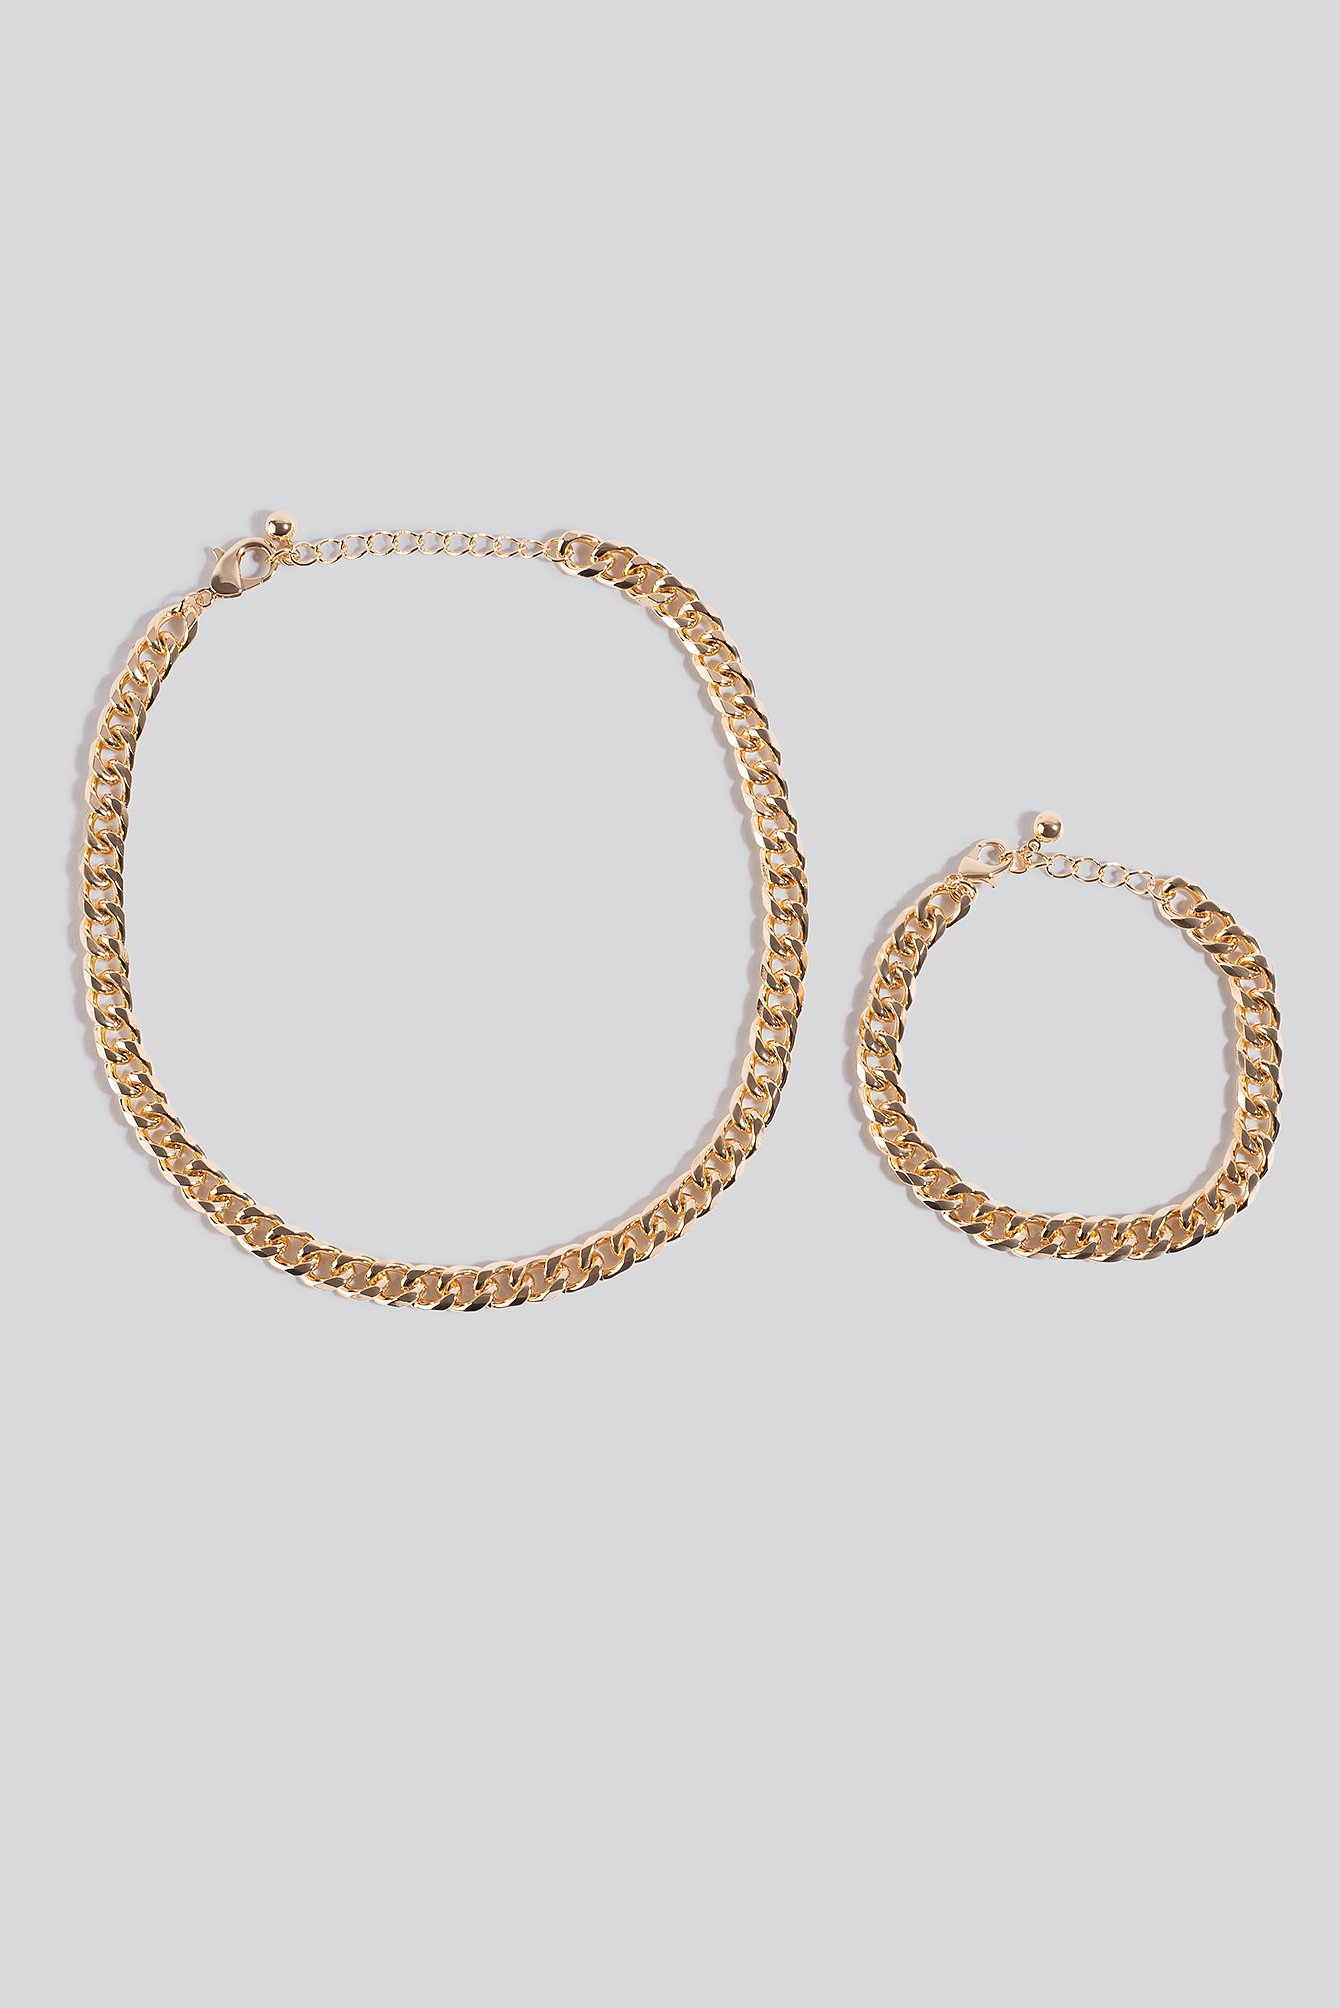 na-kd accessories -  Chunky Chain Necklace and Bracelet - Gold